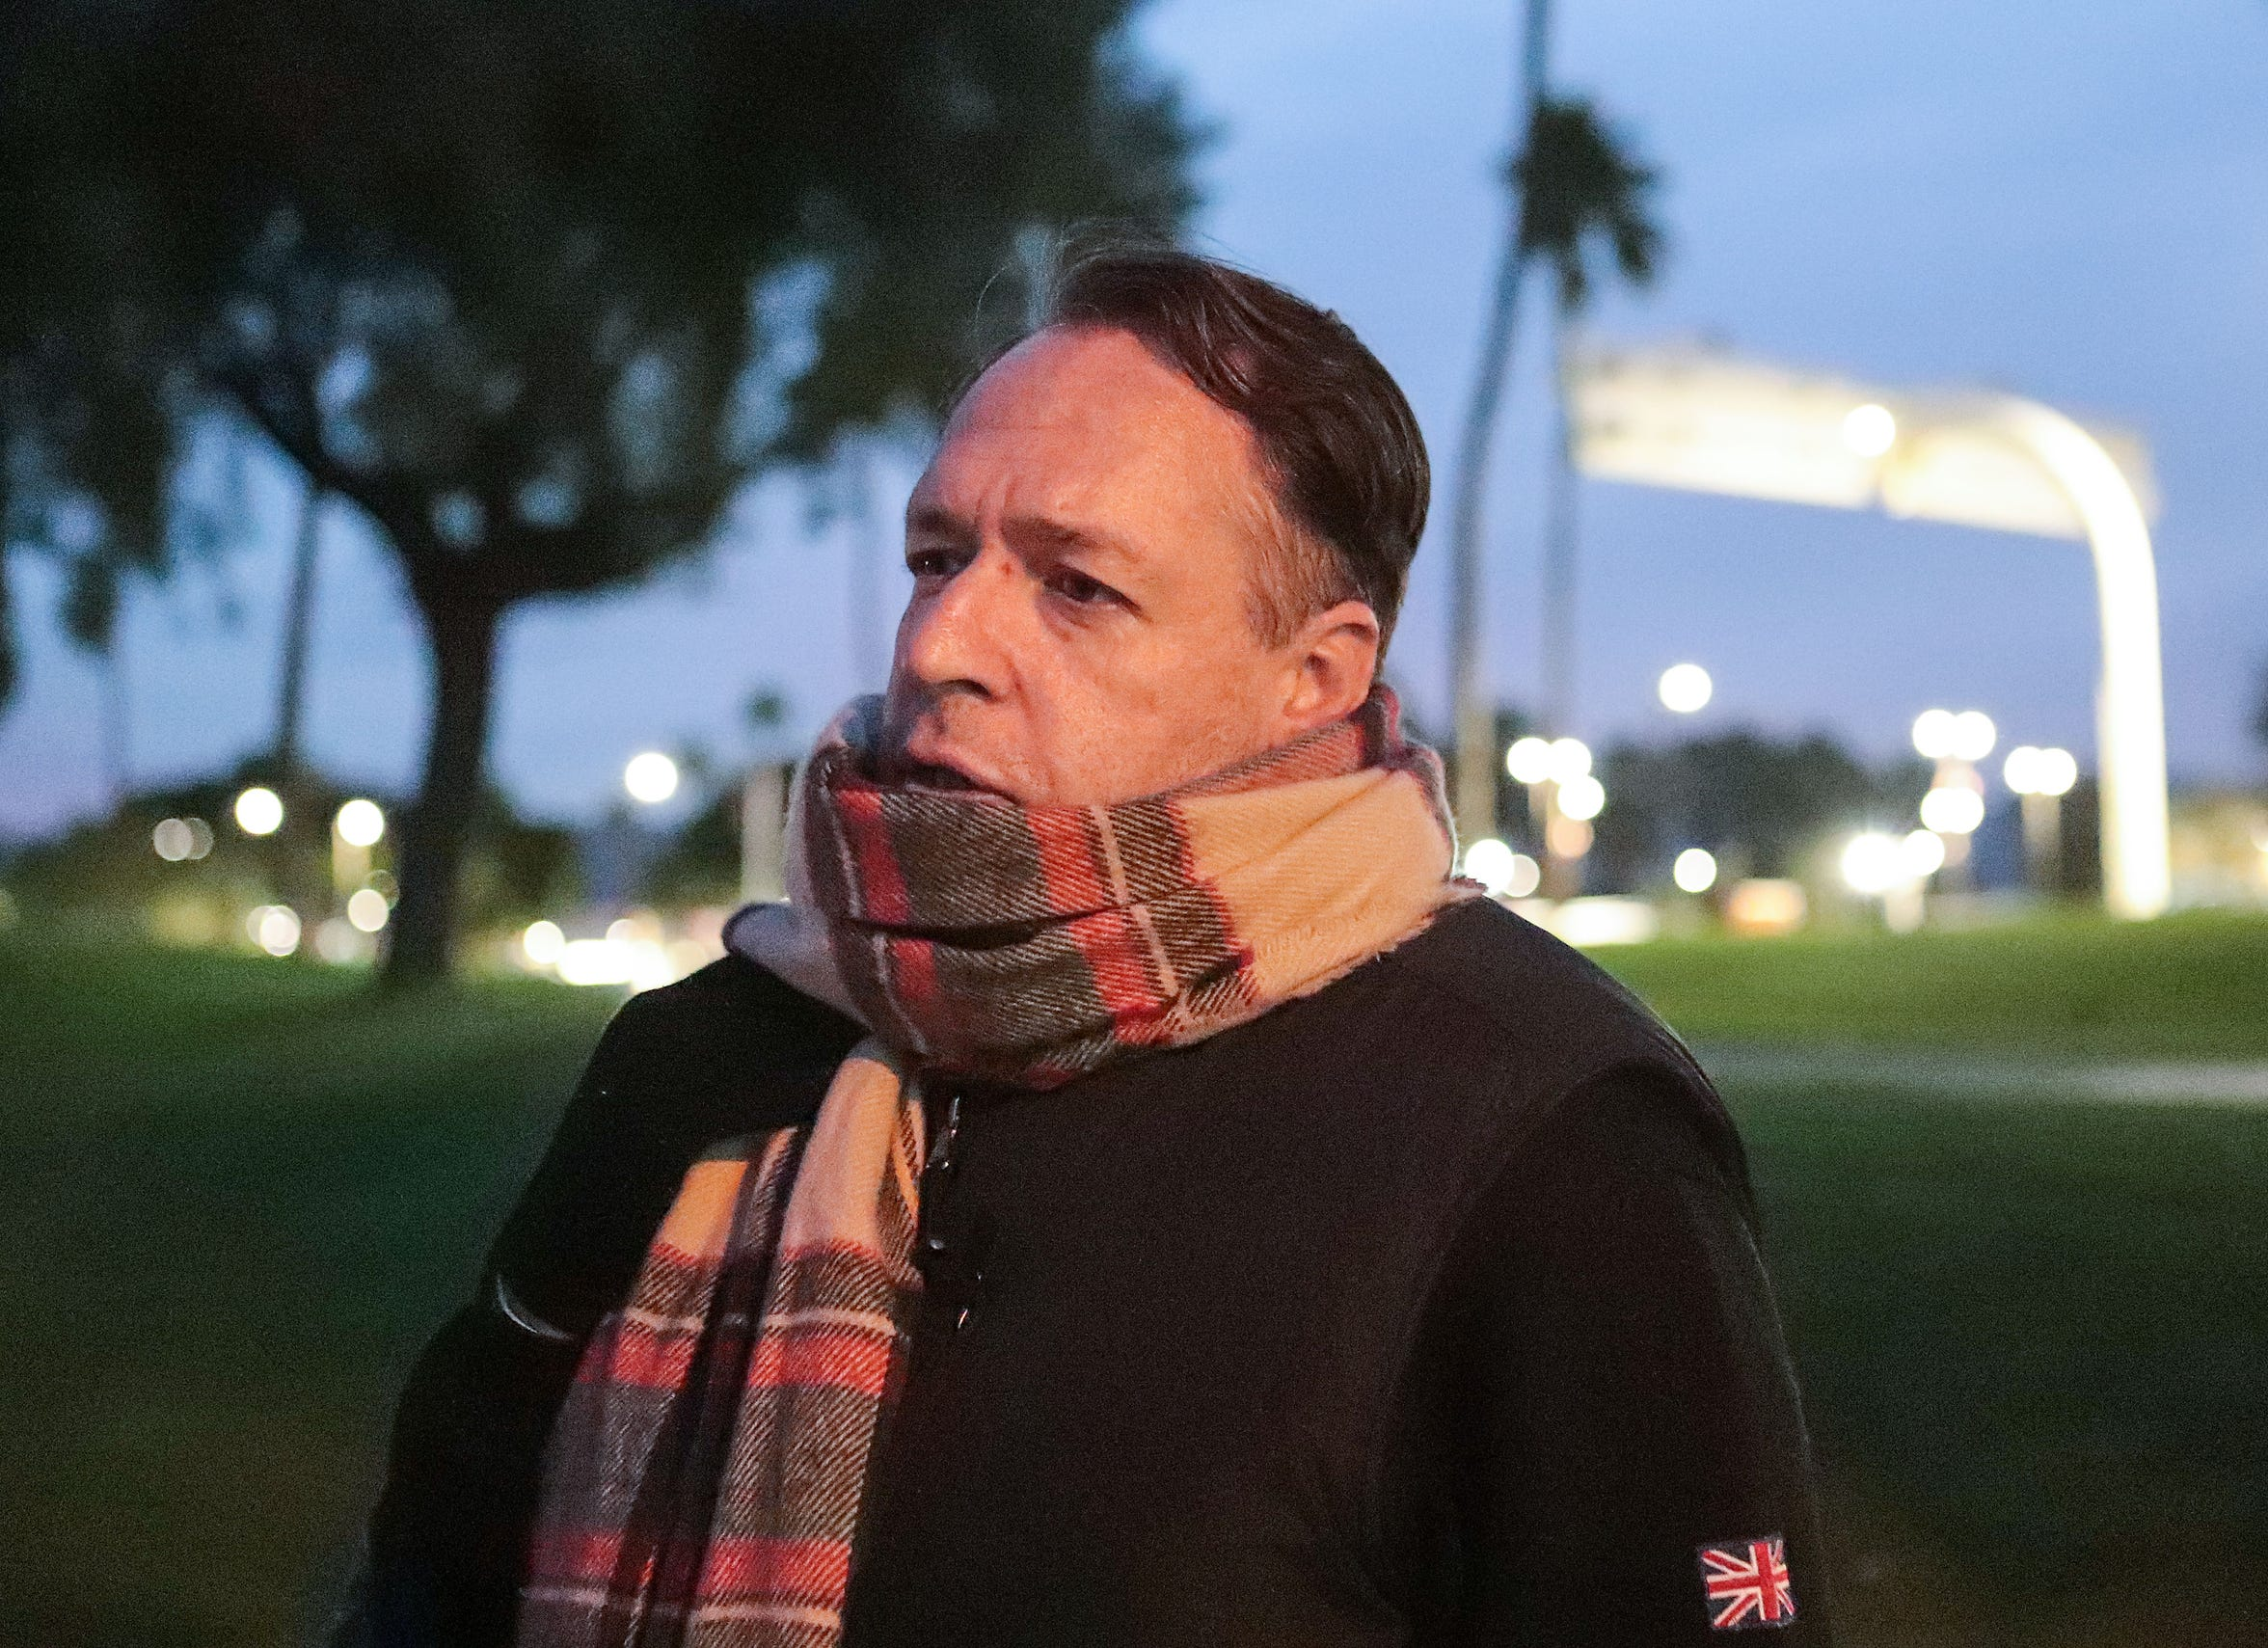 Philven Sitton waits for an early morning bus to take him to Well in the Desert where he volunteers in Palm Springs, December 2, 2019.